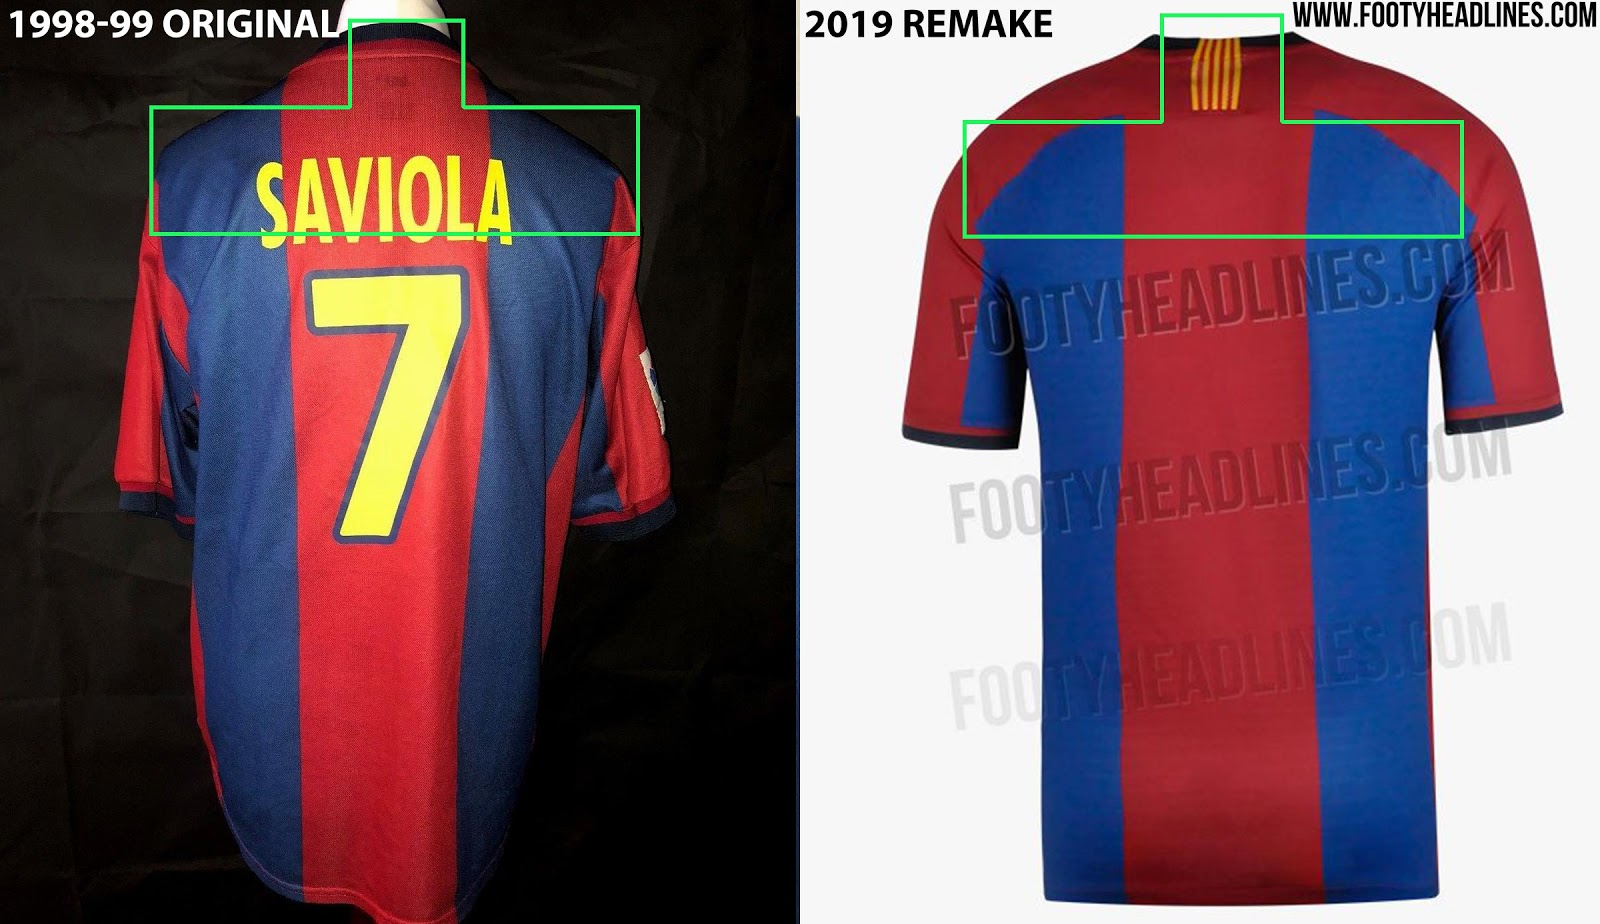 03e2d9dba The third important difference is that the 2019 remake of the FC Barcelona  1998-99 kit will not feature the classic numbers but the current La Liga  font ...